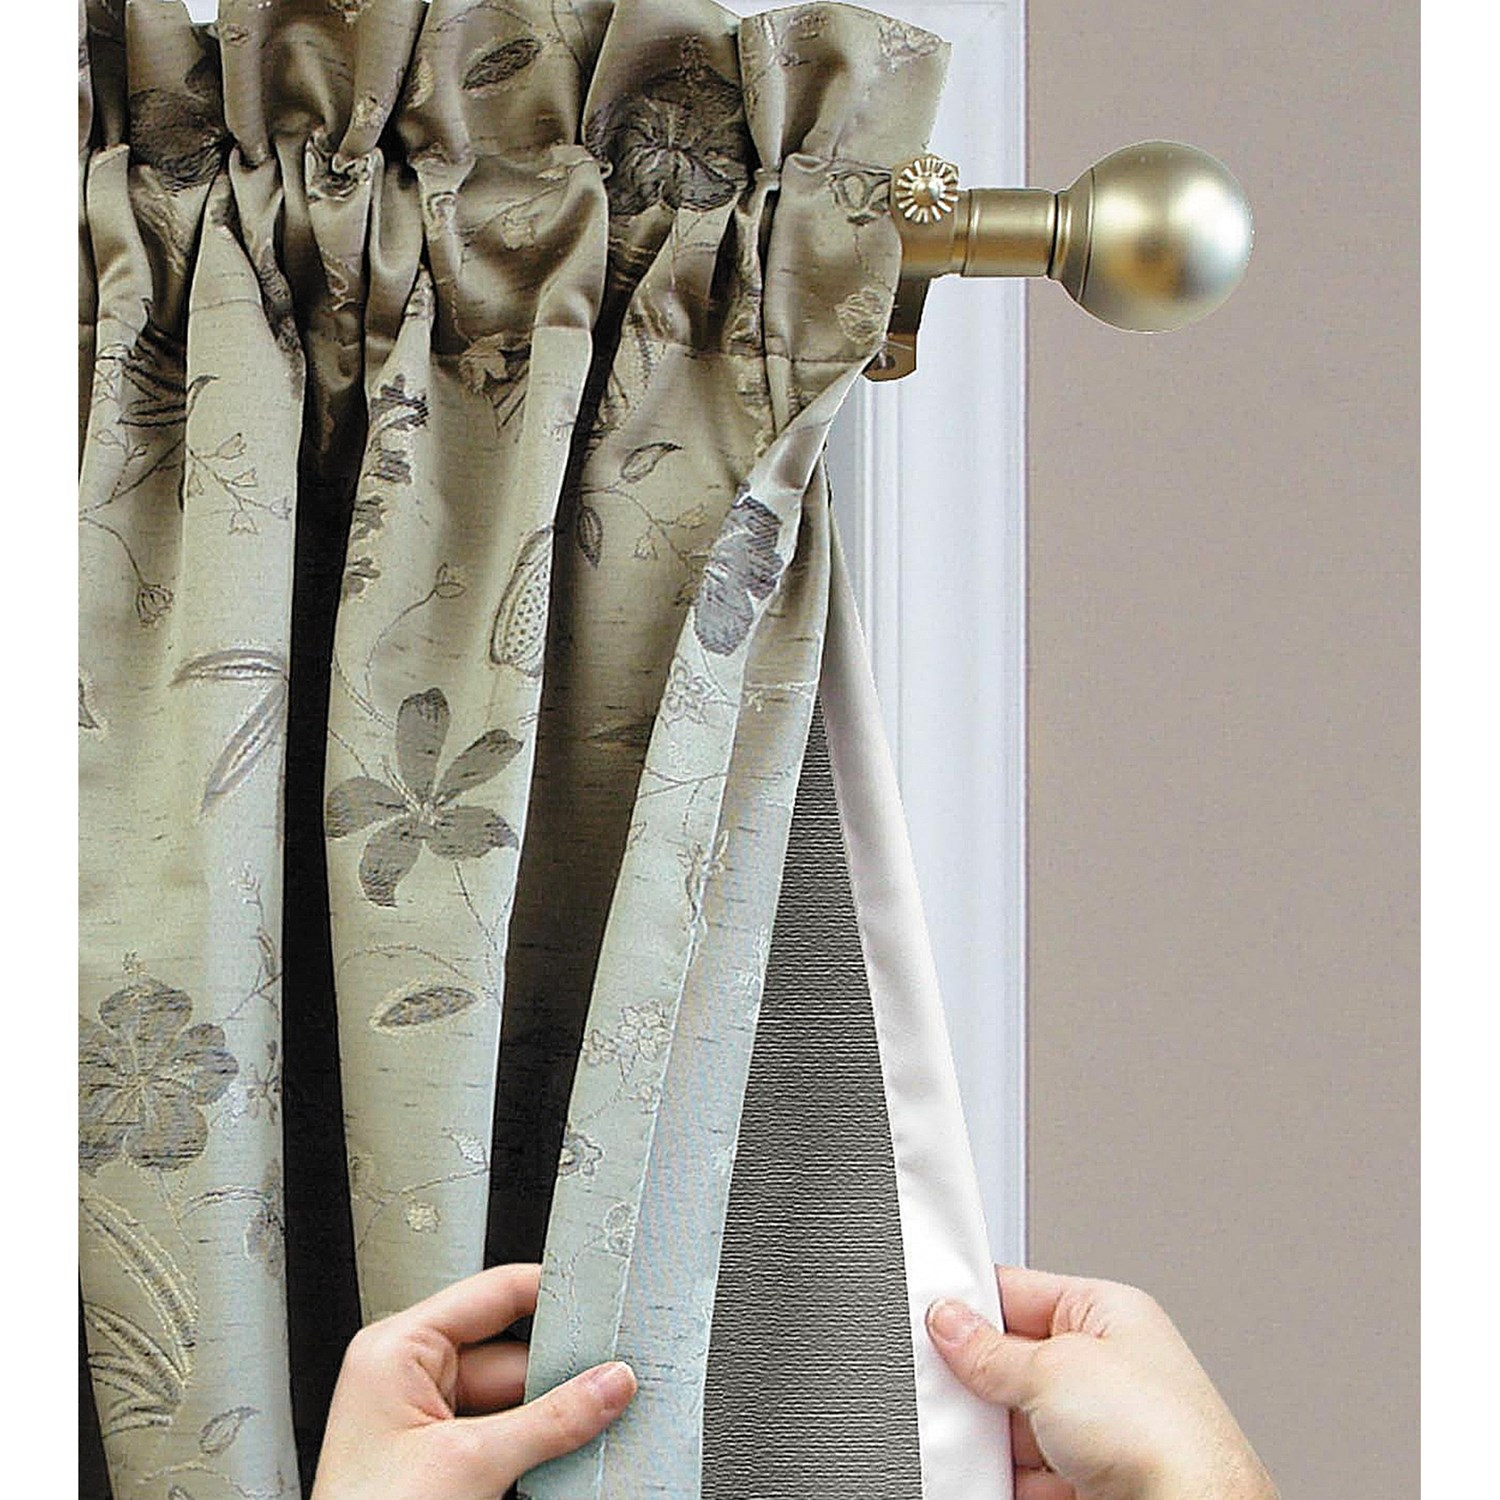 Insulated Grommet Curtains | Foam Backed Drapes | Thermal Insulated Curtains